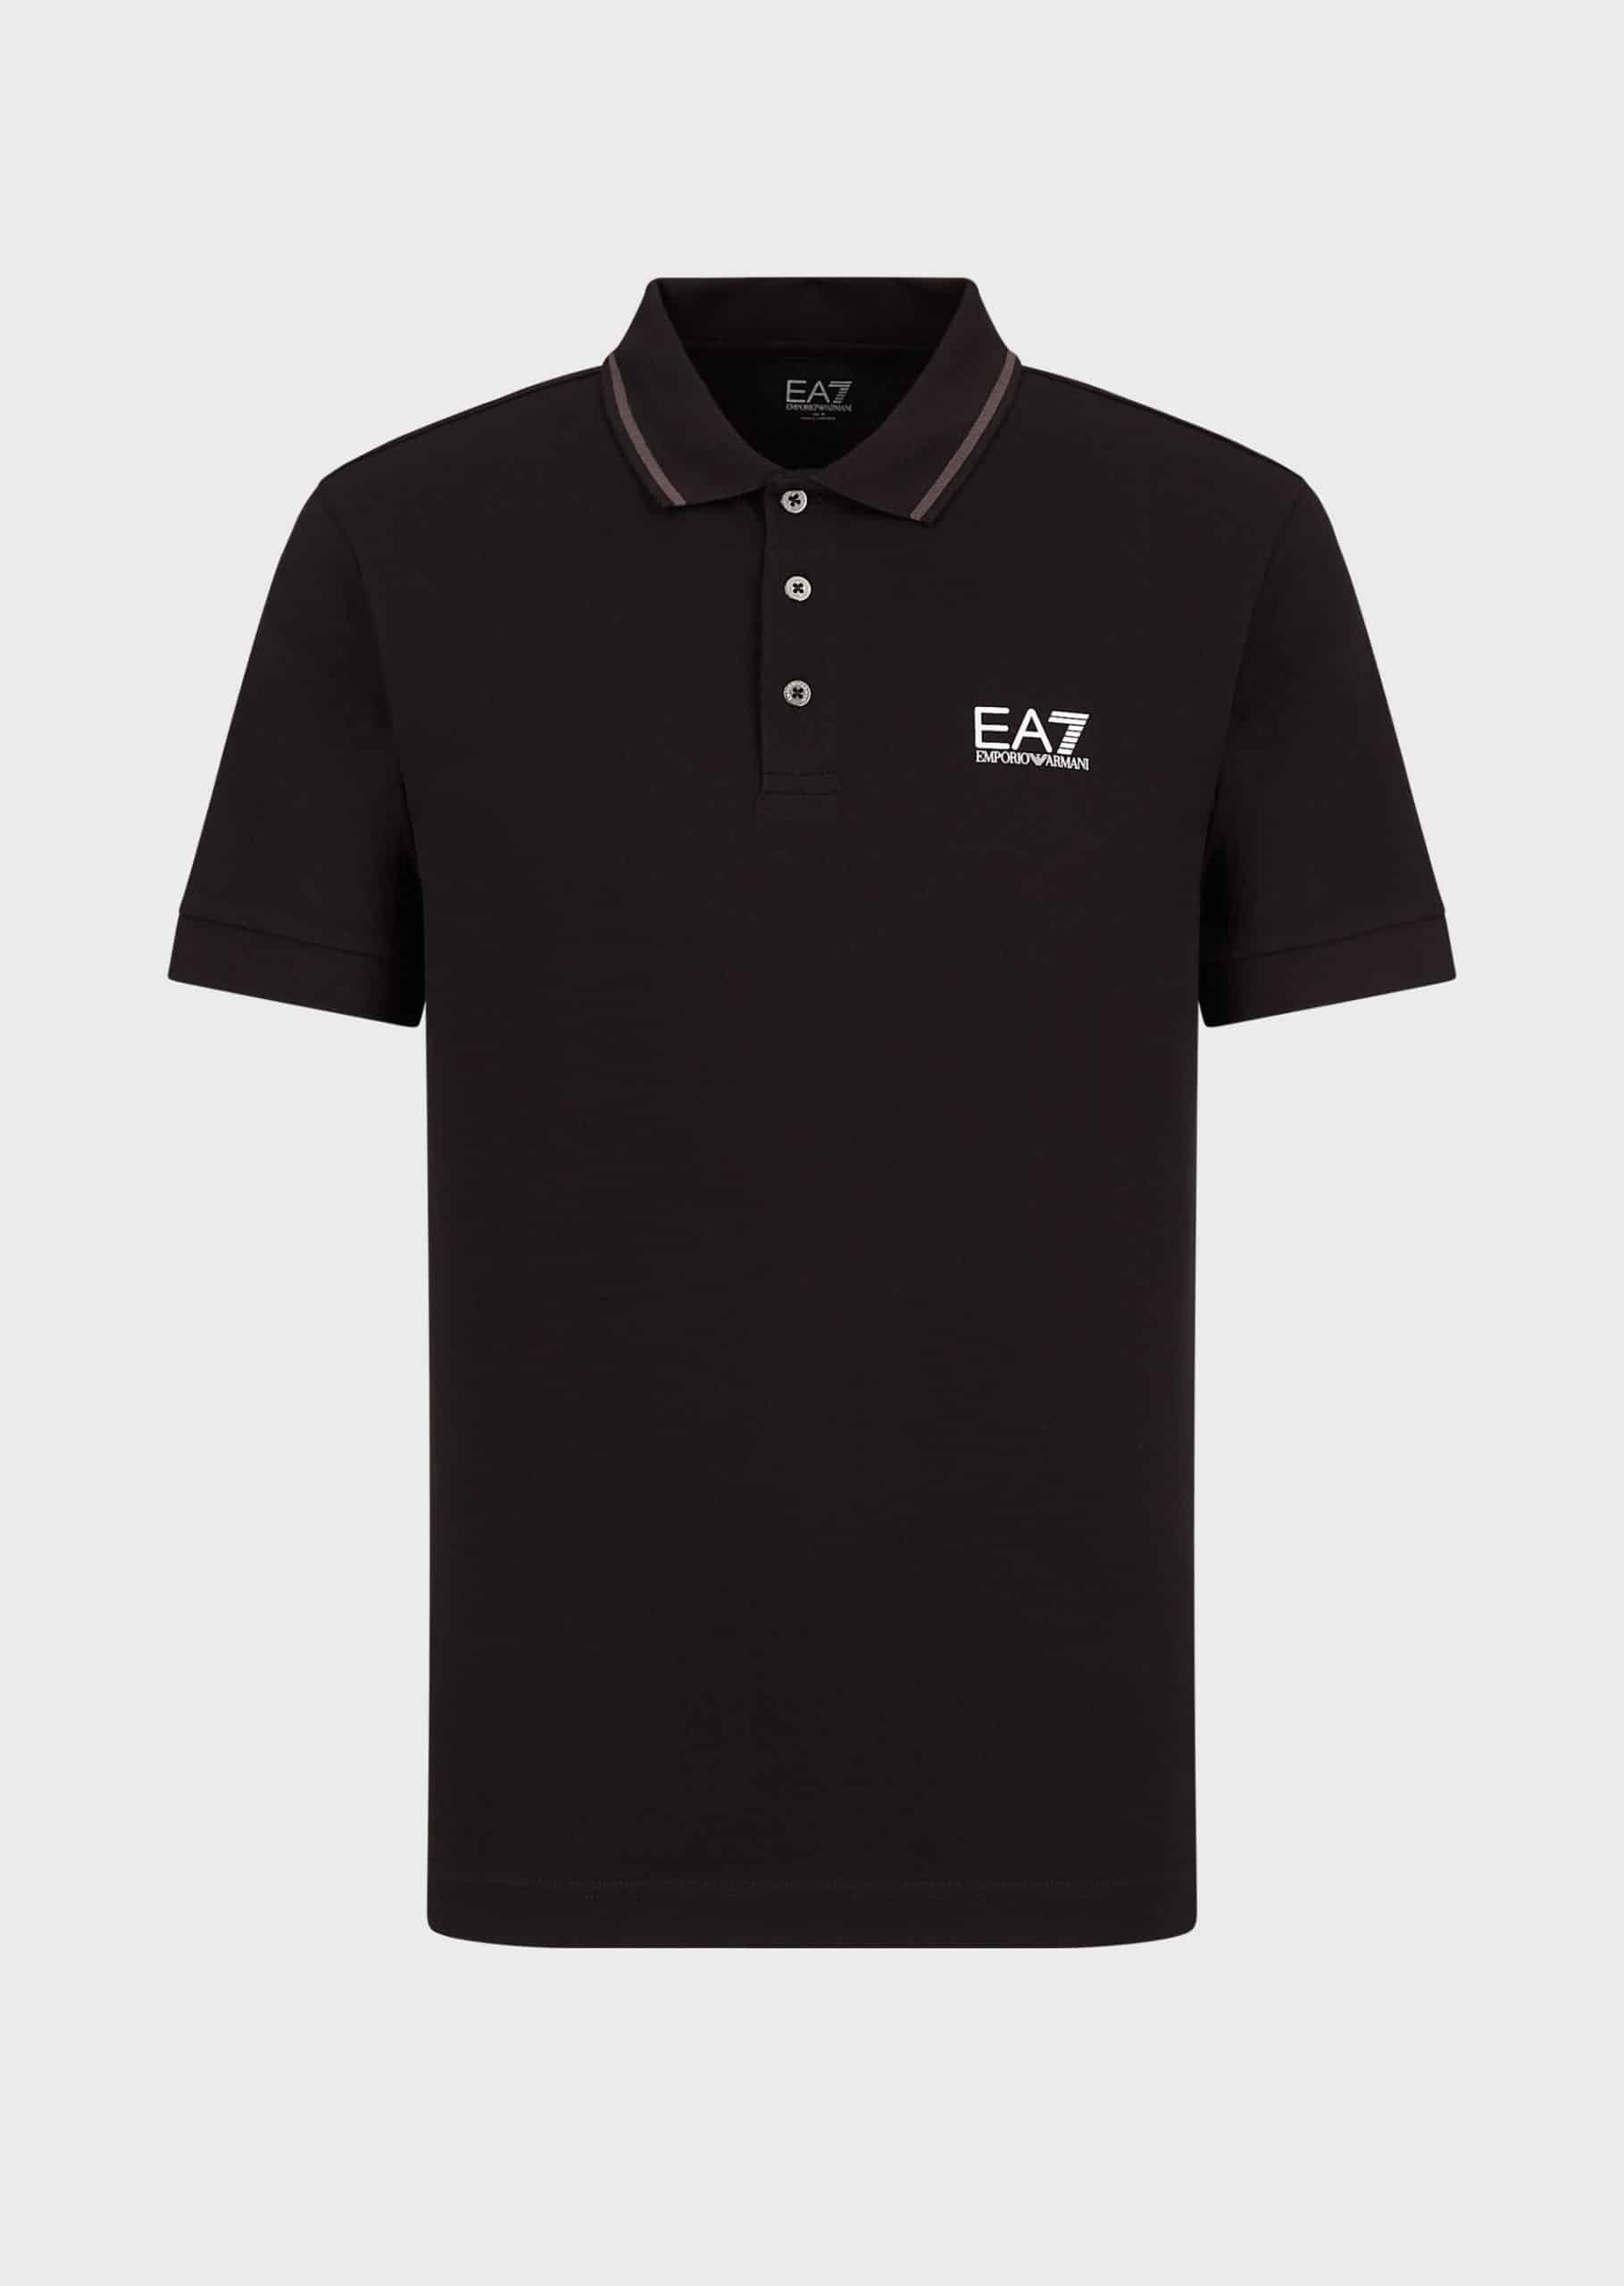 Armani EA7 Polo Black and Grey